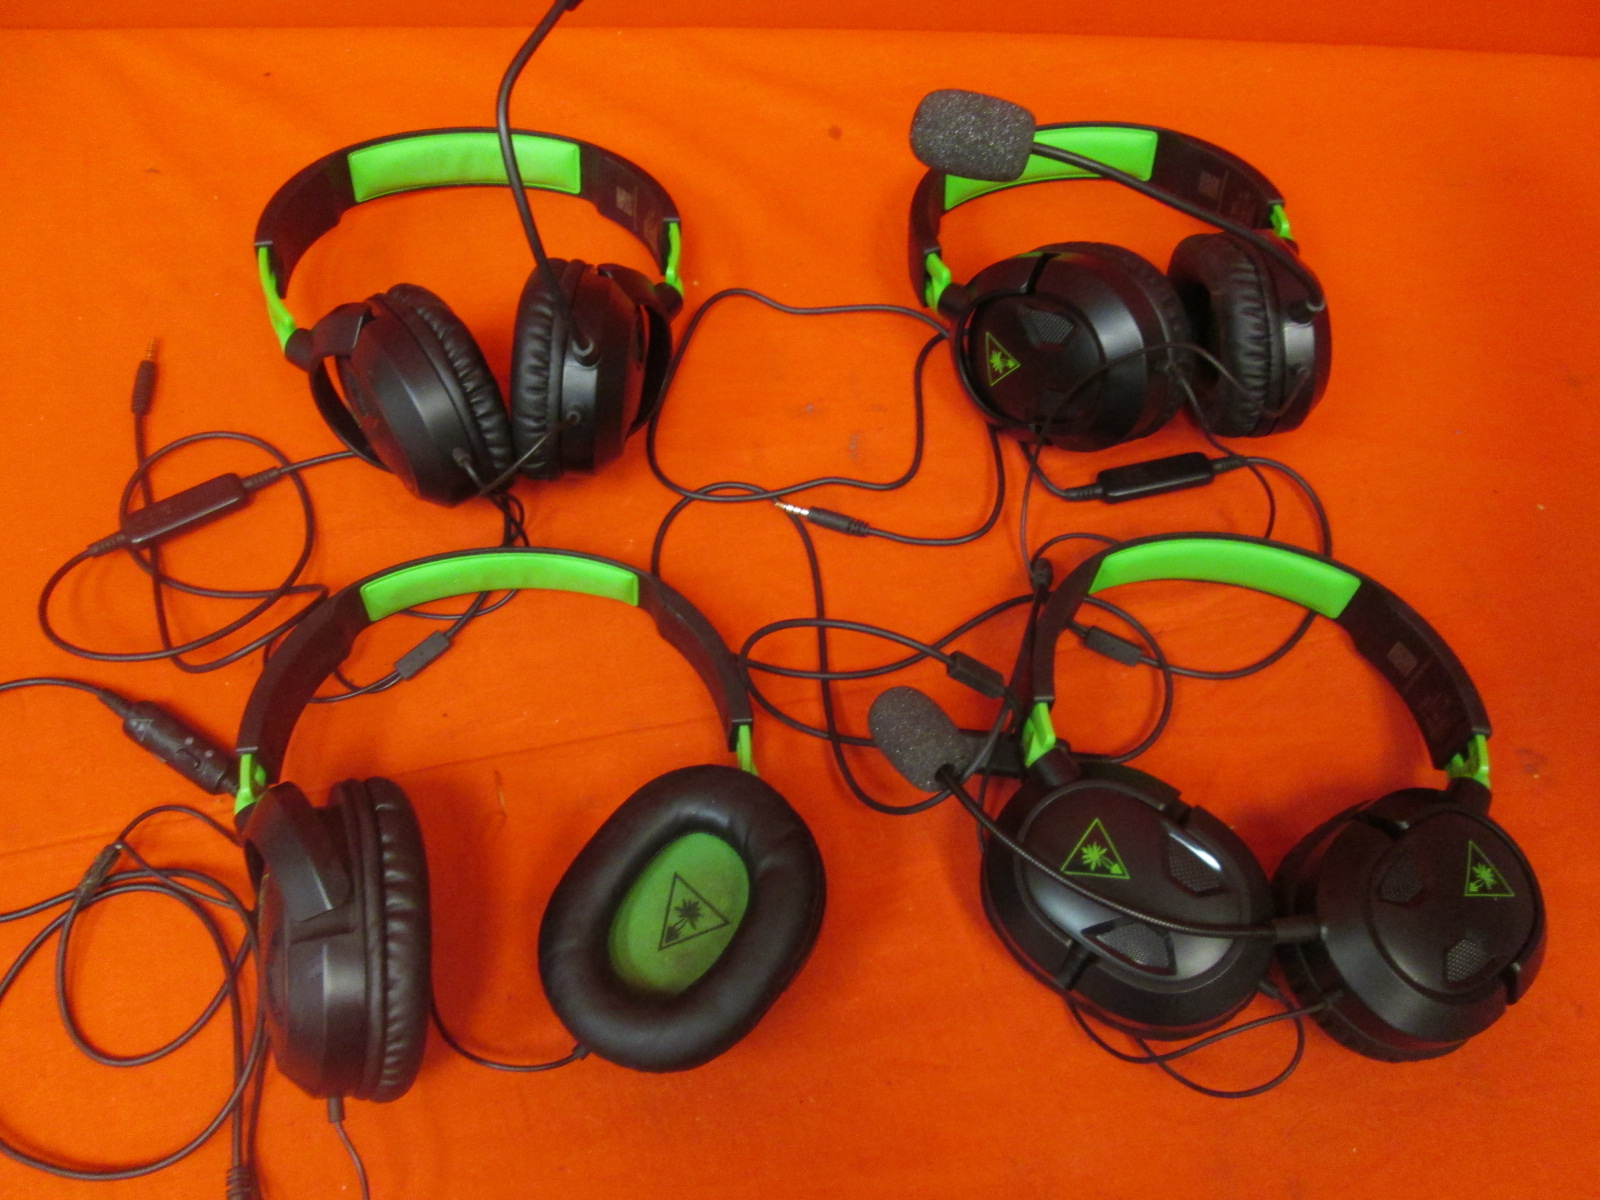 Broken Lot Of 4 Turtle Beach Ear Force Recon Gaming Headsets